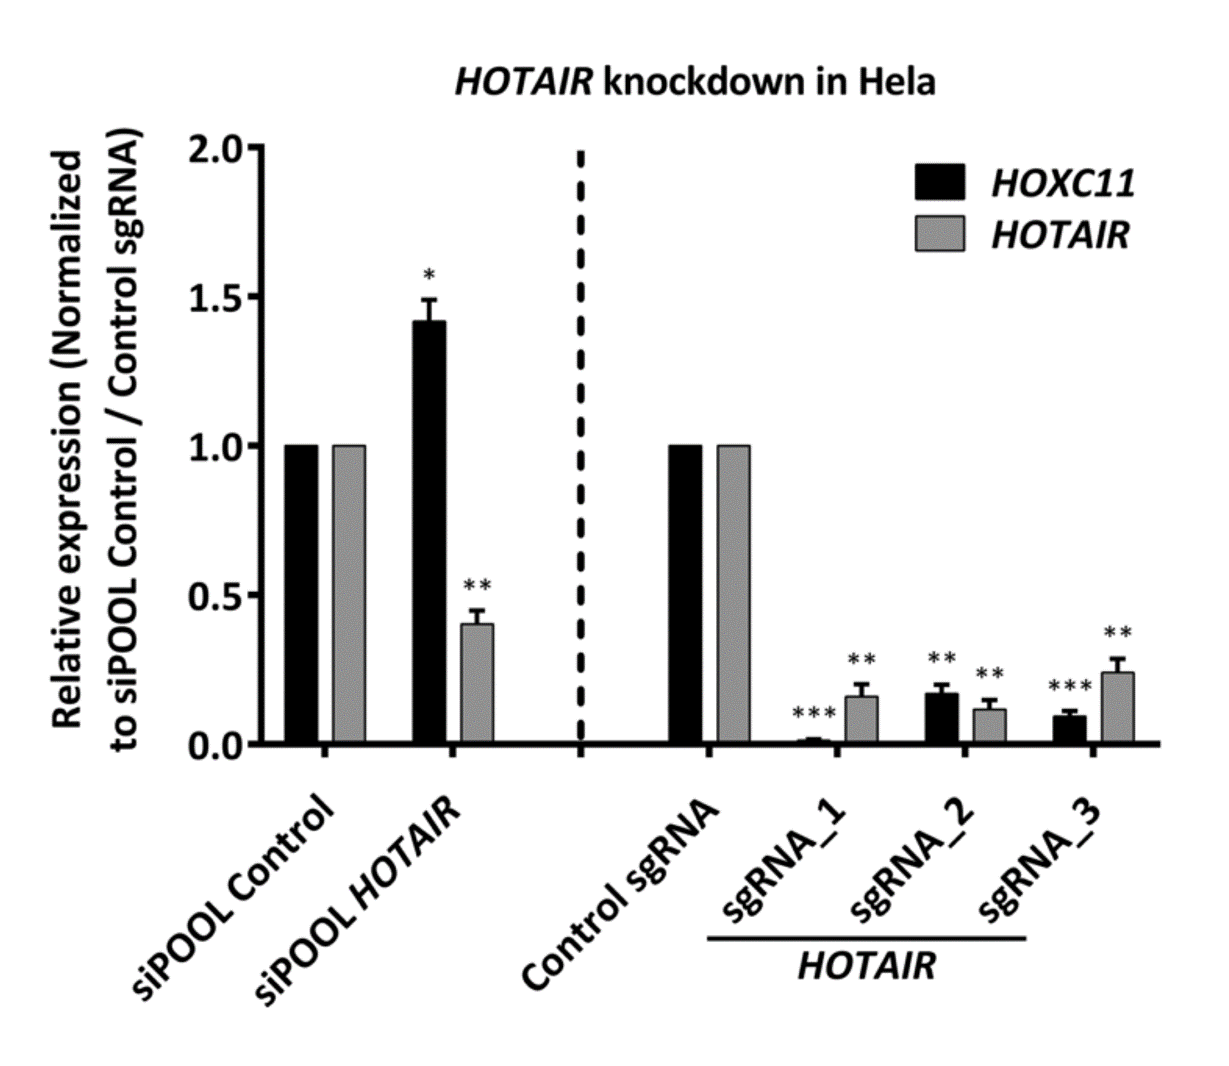 HOTAIR downregulation by CRISPR and siPOOL